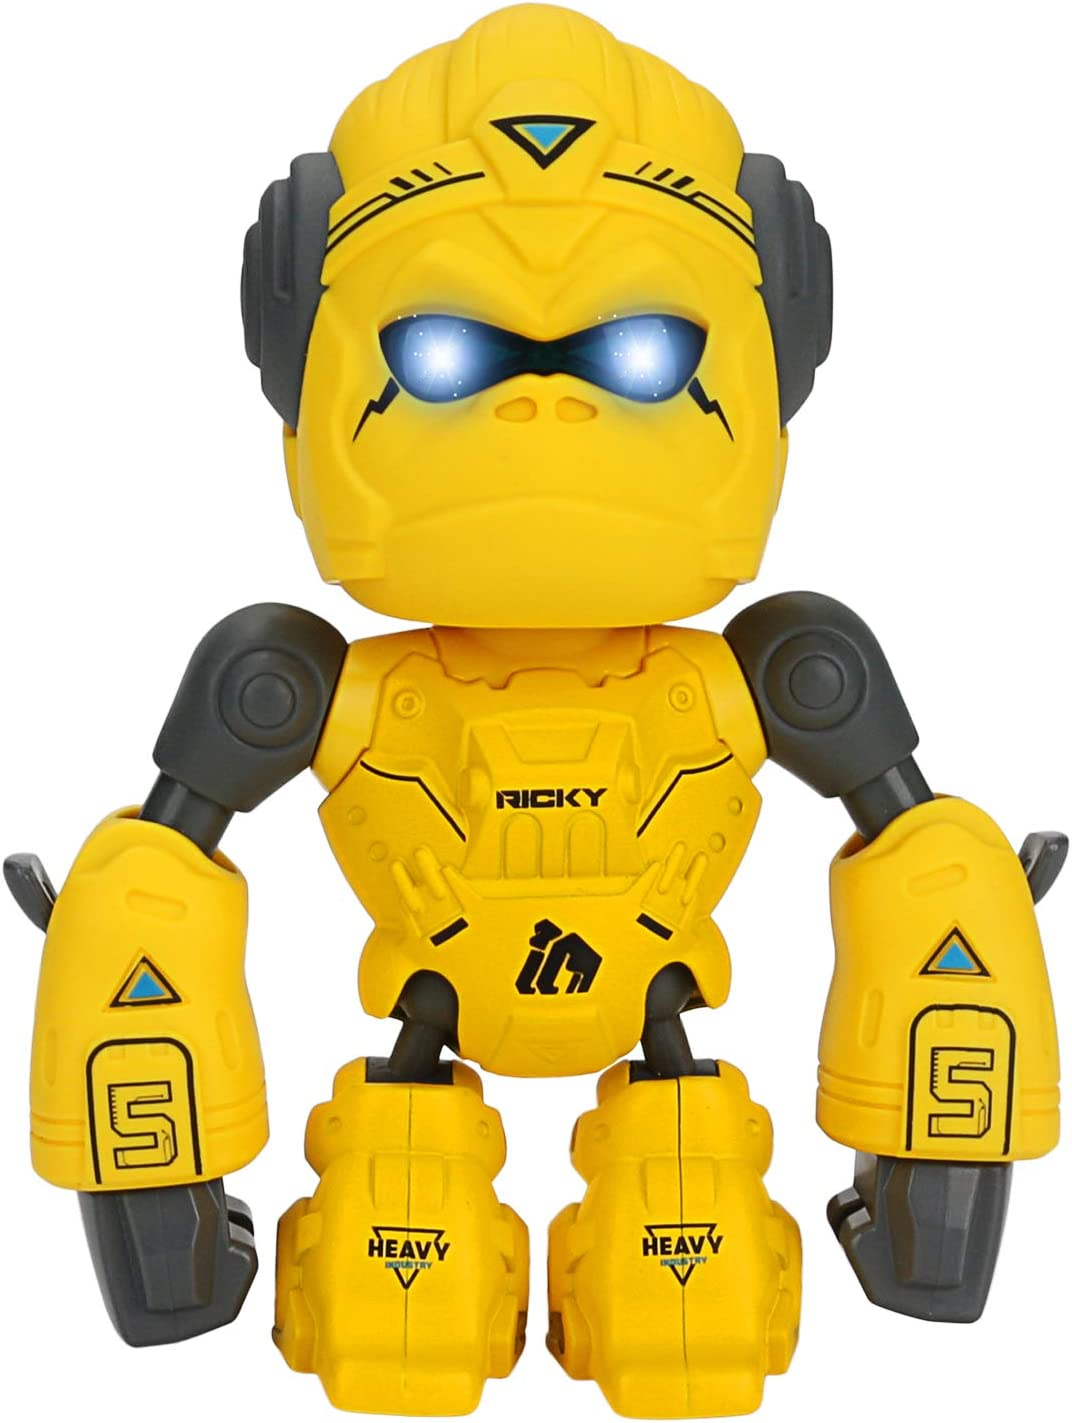 WIOR Gorilla Robot Toy Cool Sounds and Unique Cell Phone Stand Yellow Touch Sensitive King Kong Toys with Colorful Flashing LED Eyes Ideal Birthday for Kids 3-Year-Old /& Up